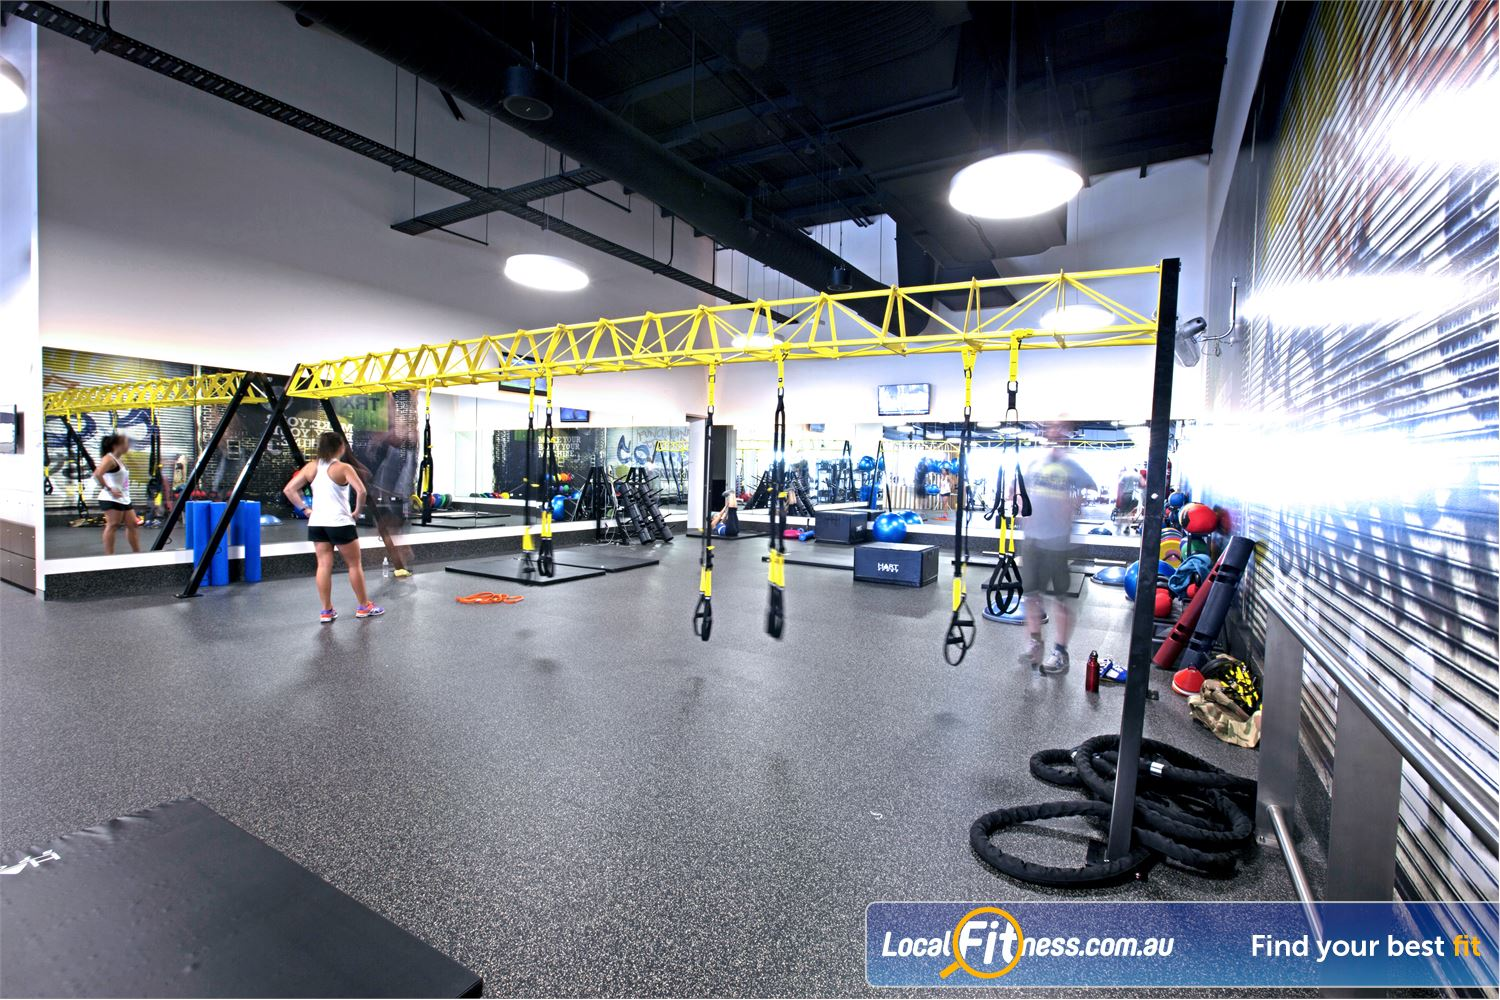 Goodlife Health Clubs Near Twin Waters Dedicated Maroochydore TRX rig and functional training zone.